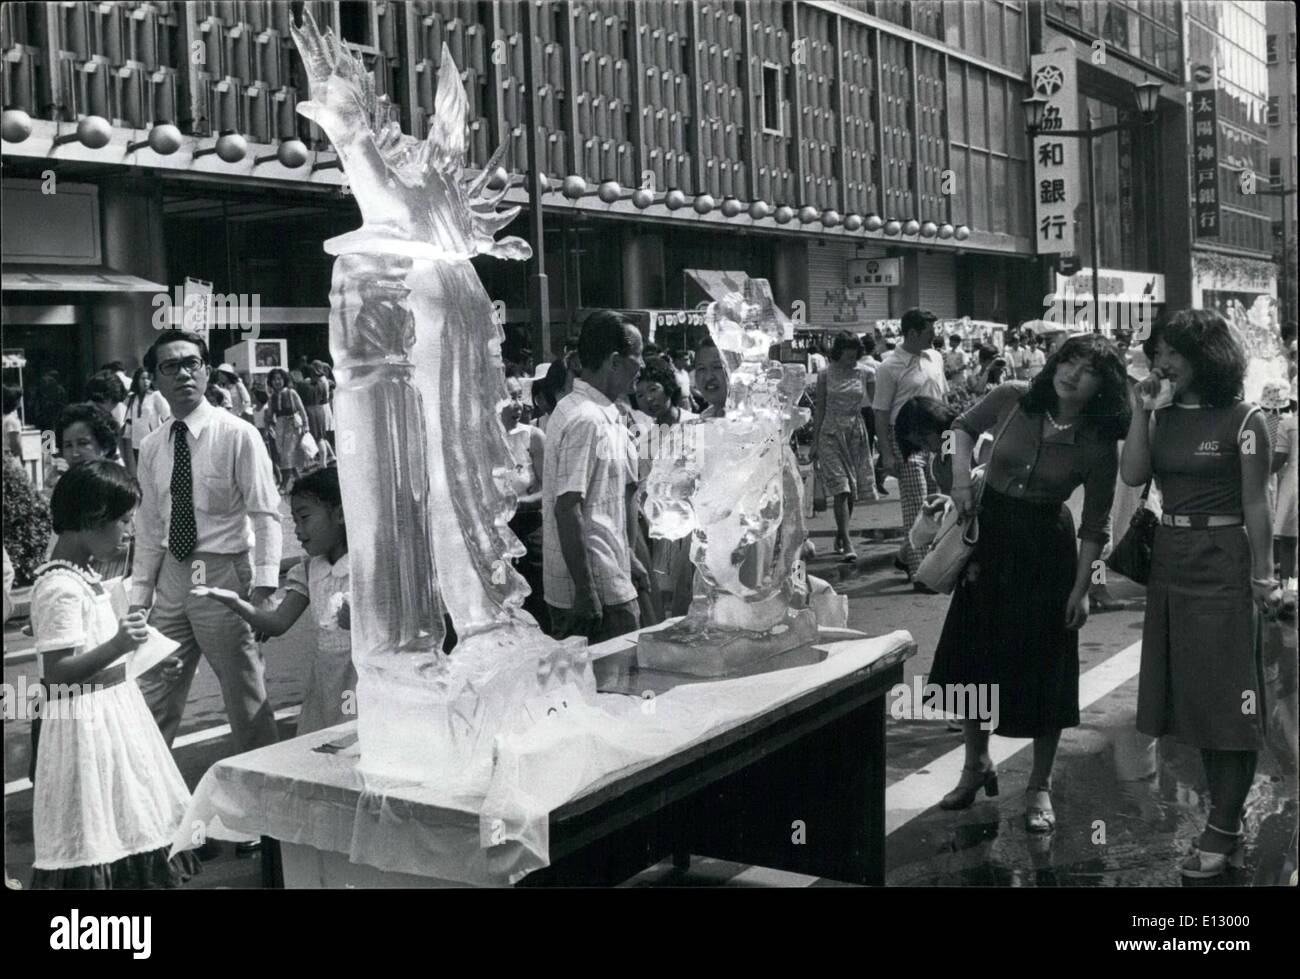 Feb. 25, 2012 - Ice Sculptors Keep Cool in Tokyo - Stock Image